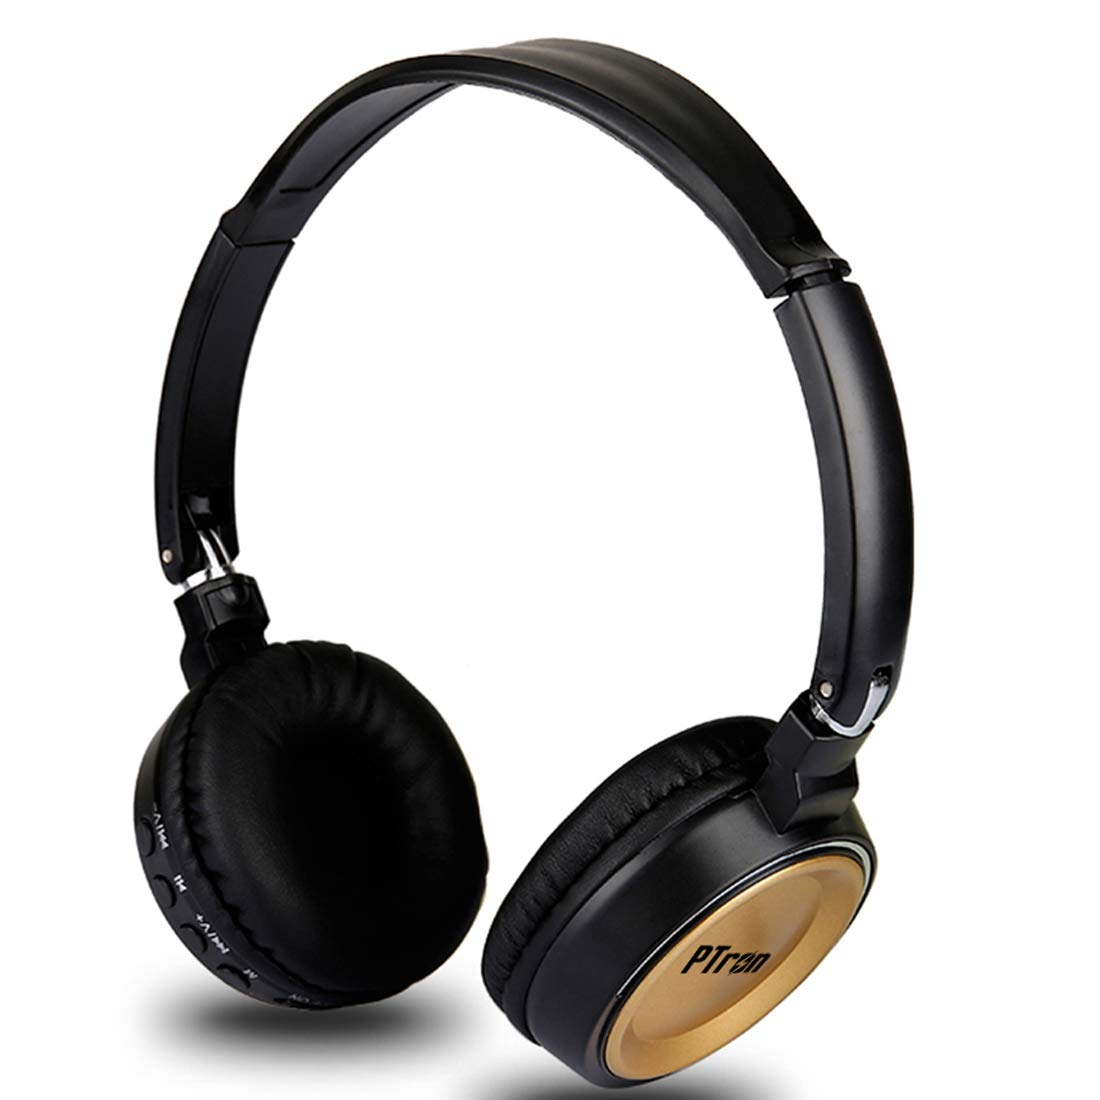 PTron Trips On-Ear Bluetooth Headphones (Gold)